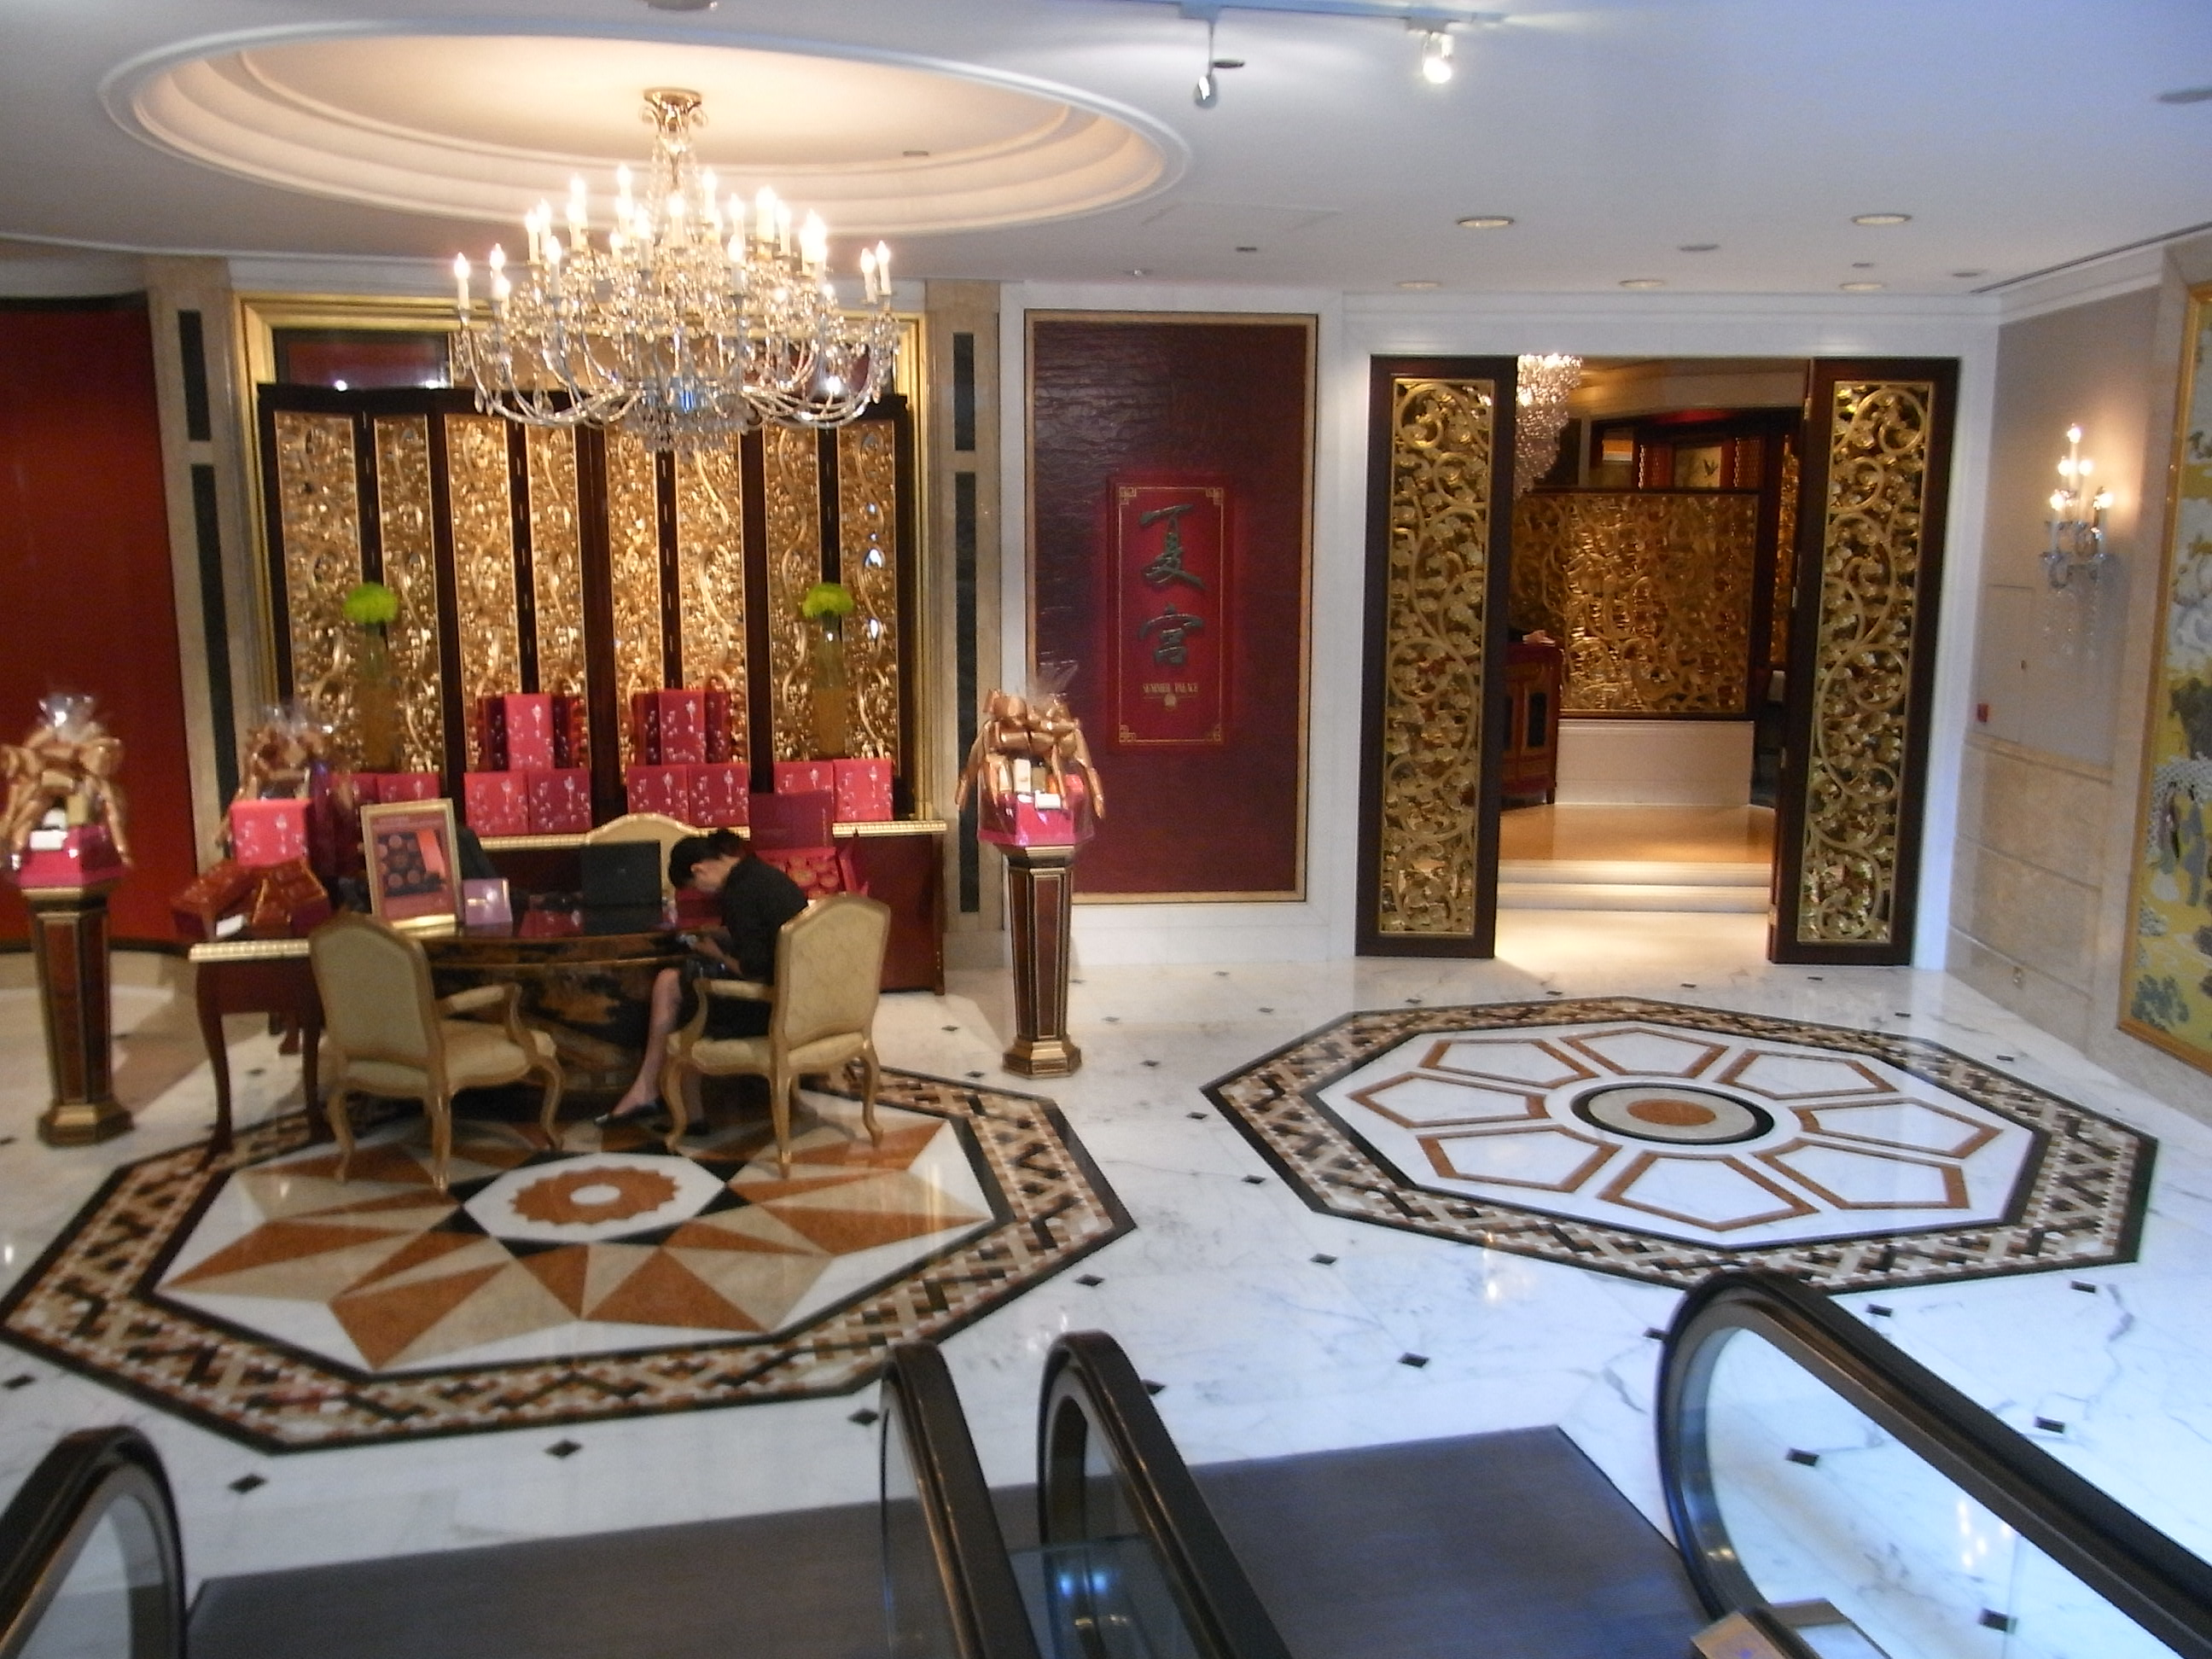 File Hk Admiralty Island Shangri La Hotel Chinese Restaurant Entrance Lobby Interior Aug 2012 Jpg Wikimedia Commons